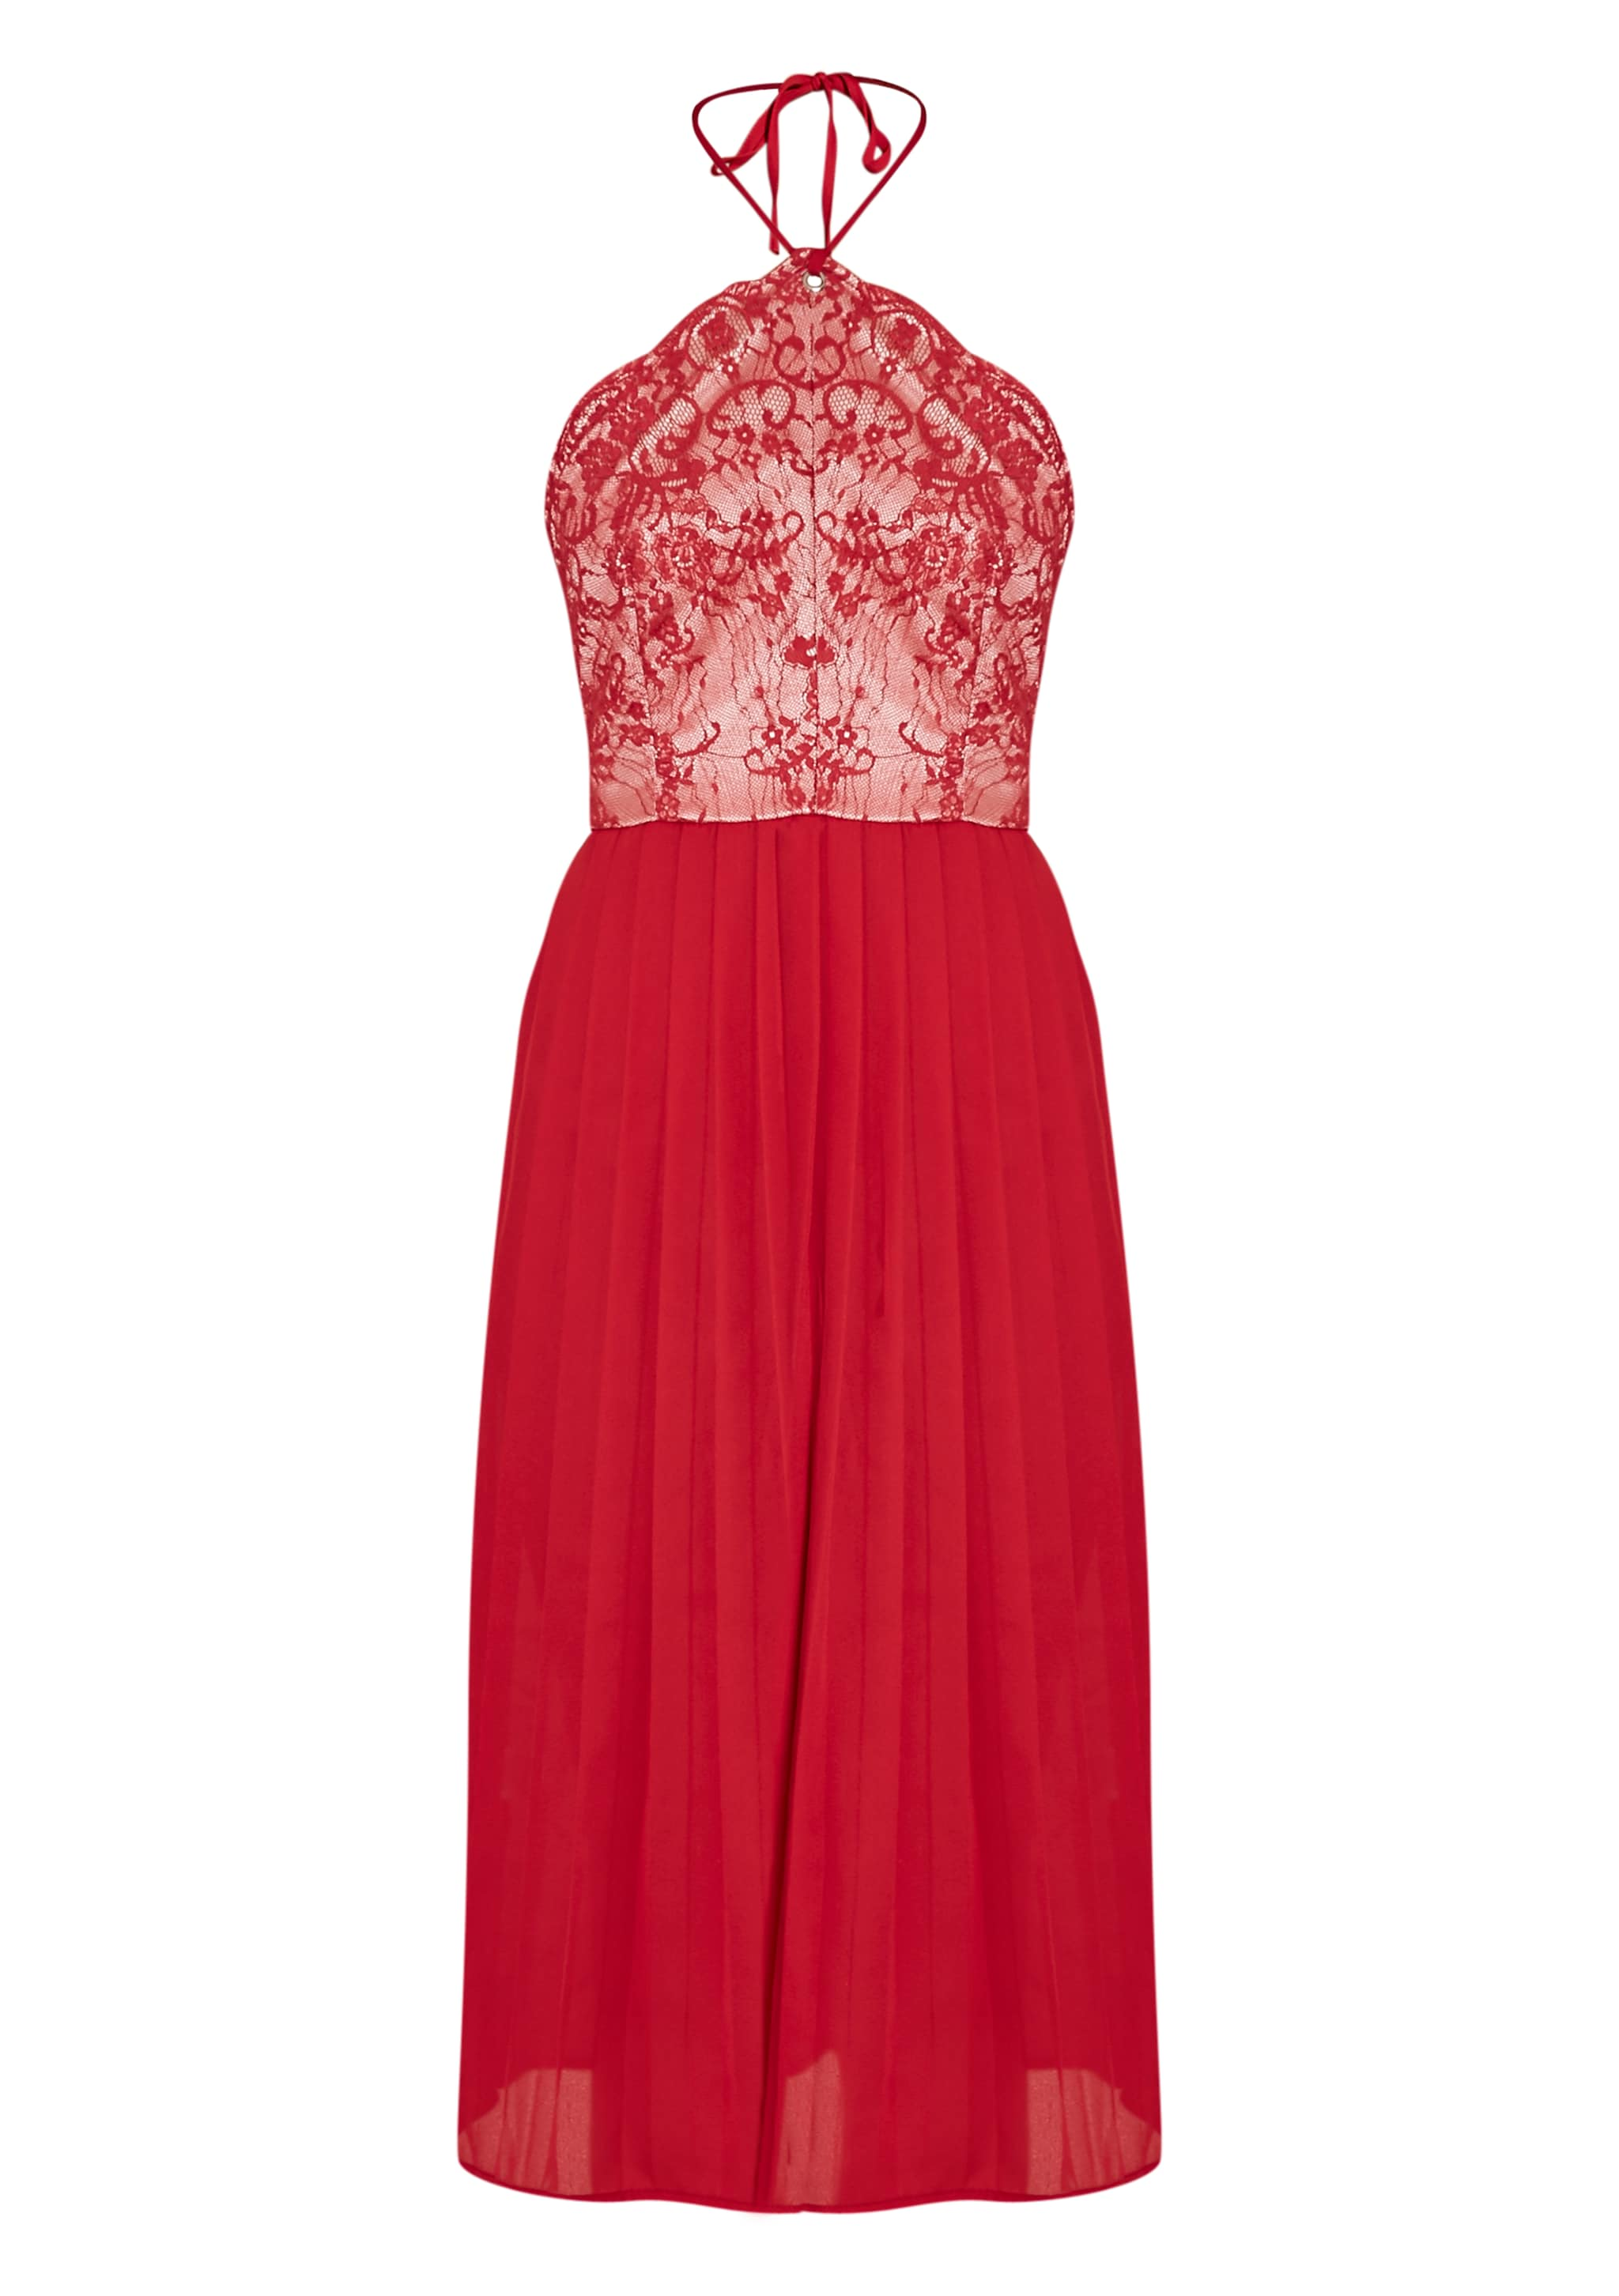 Cristabel Red Lace Halterneck Pleated Midi Dress 3